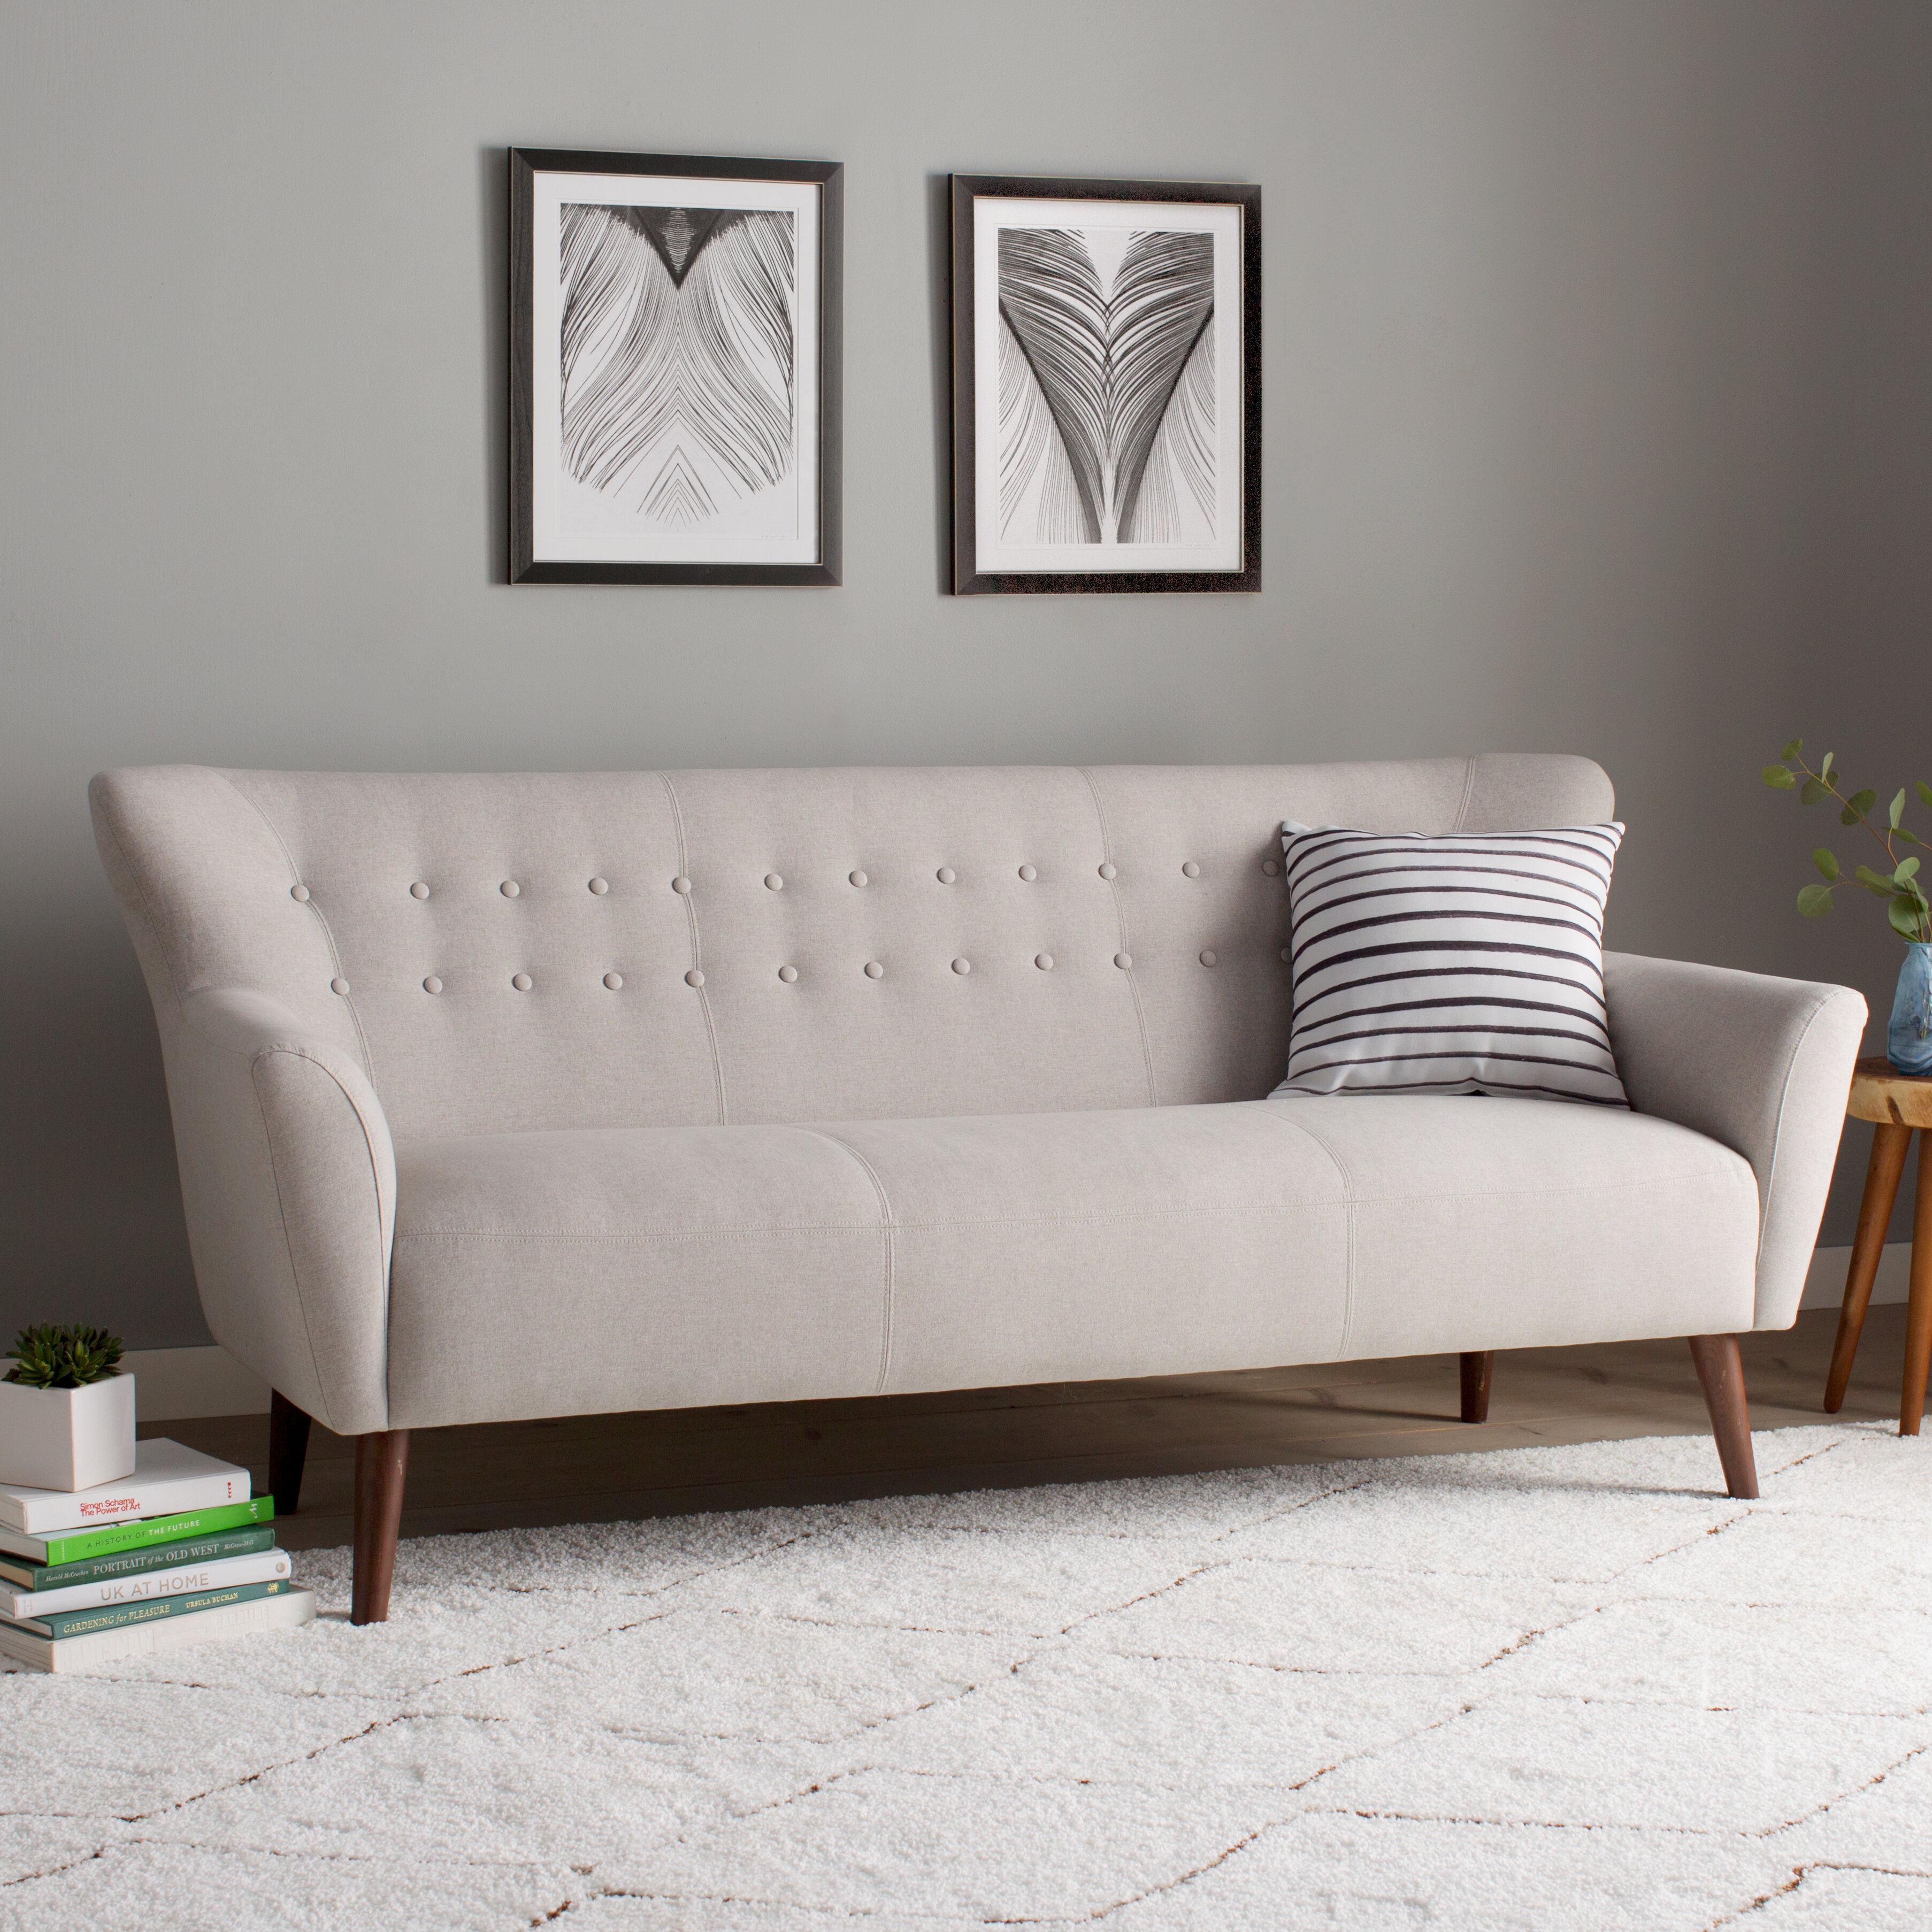 Langley street gabrielle mid century modern sofa reviews wayfair